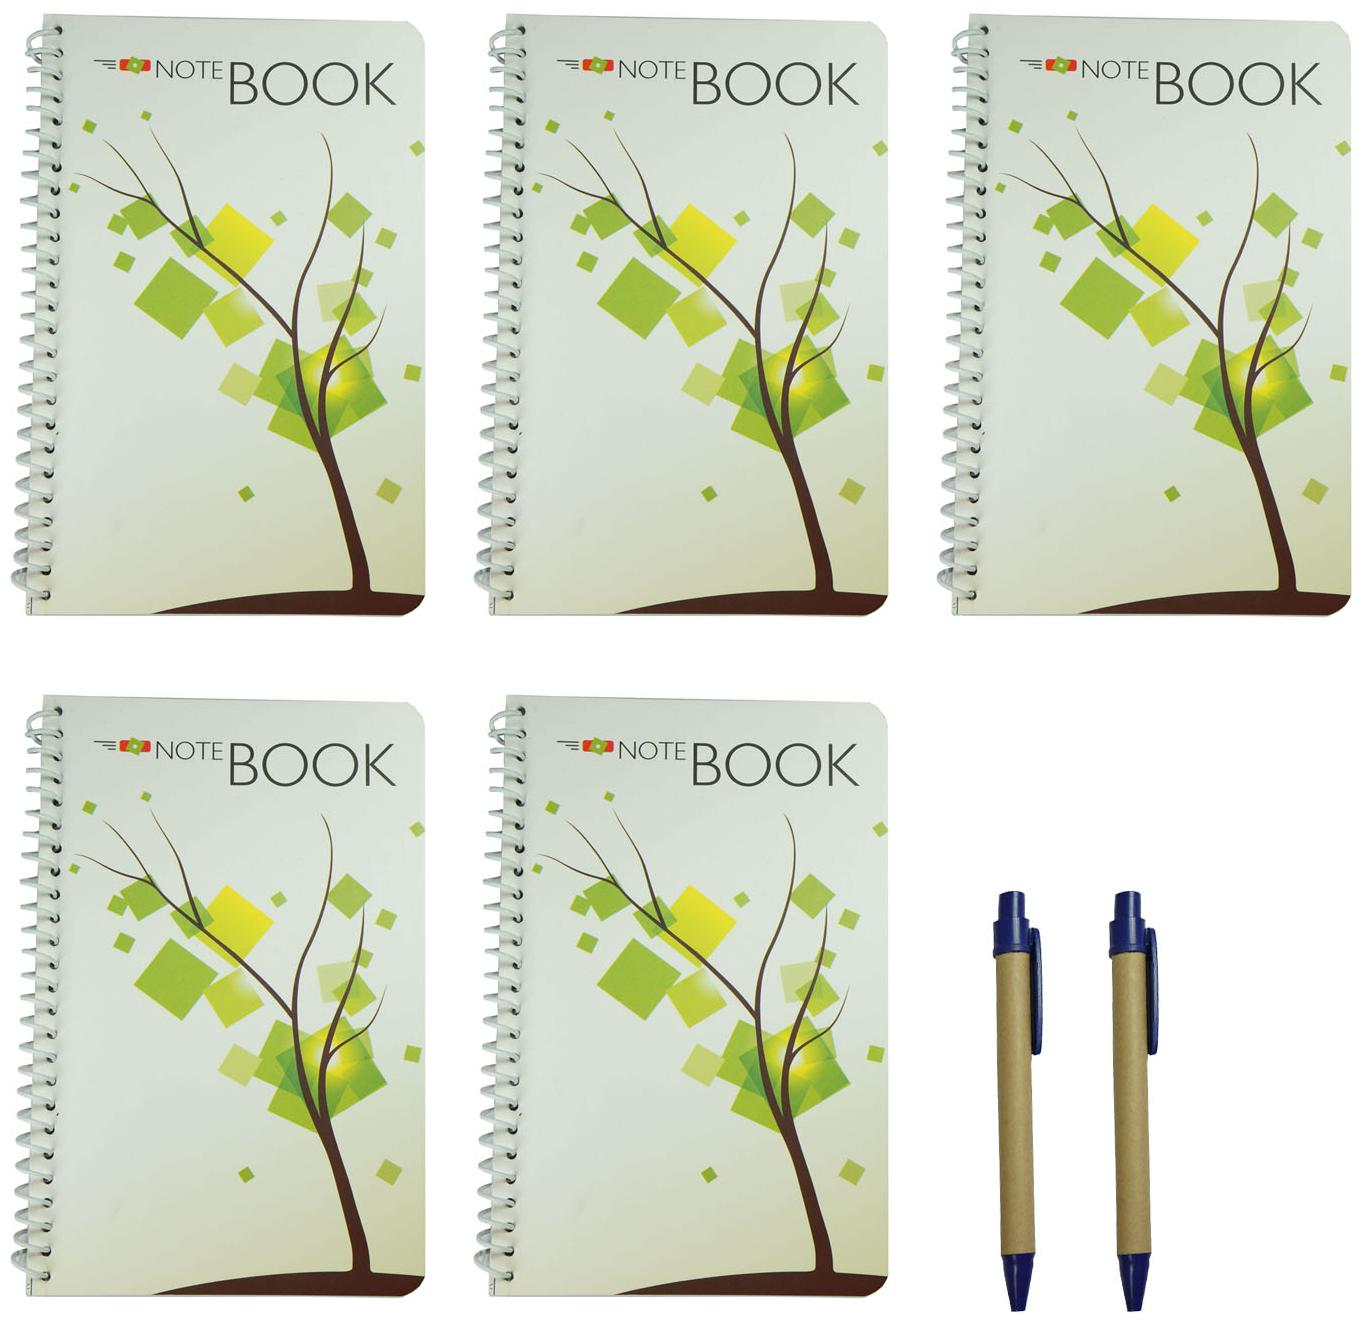 Bluto set of 5 Spiral Notebook 50 High-quality Pages with 2 cardboard pens (Assorted Cover Design)